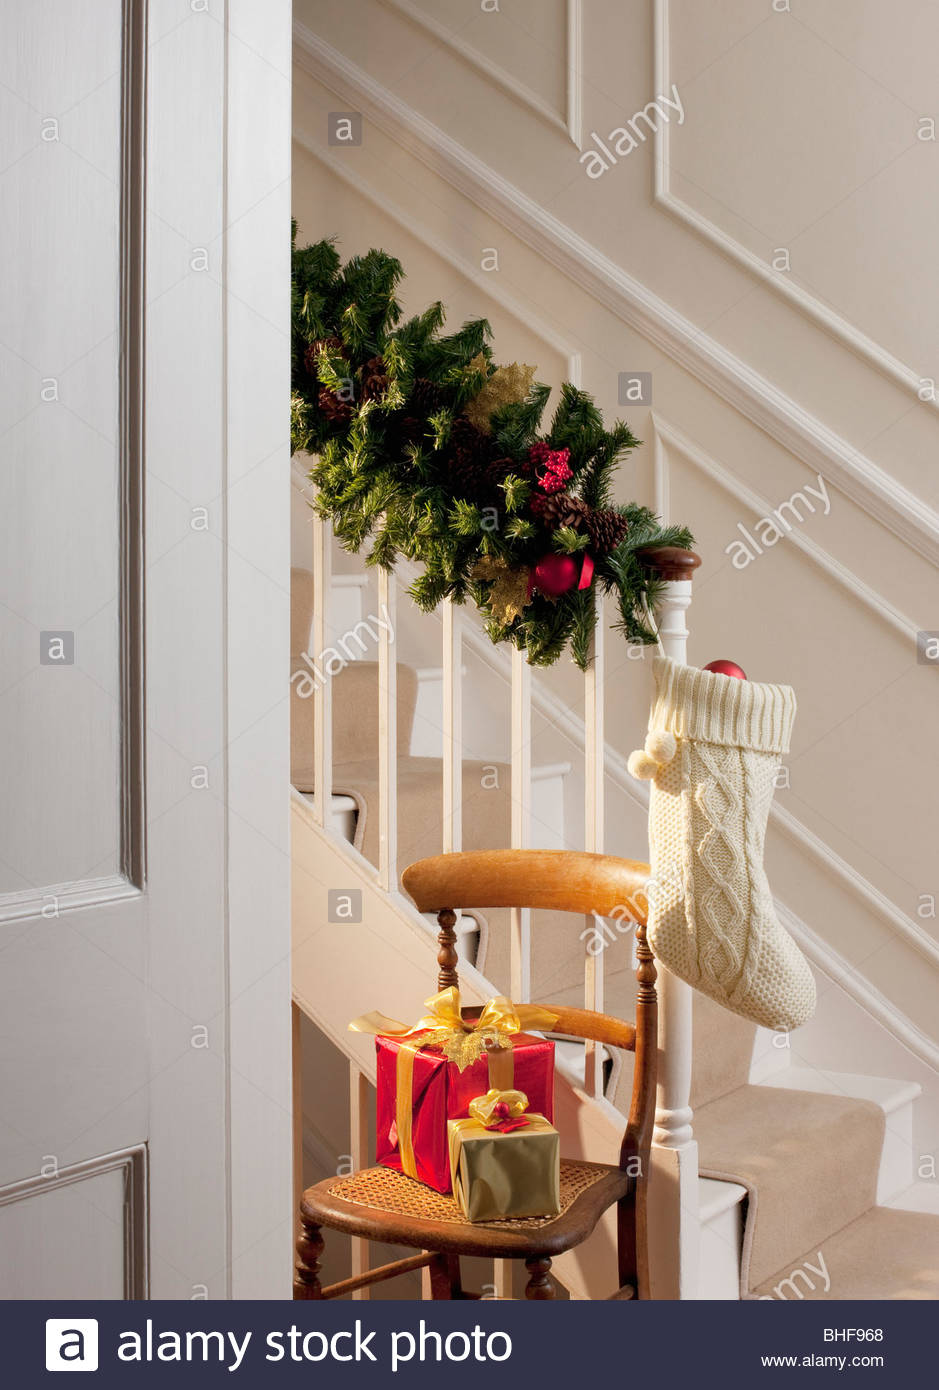 Christmas gifts and stocking near staircase stock photo for Hang stockings staircase